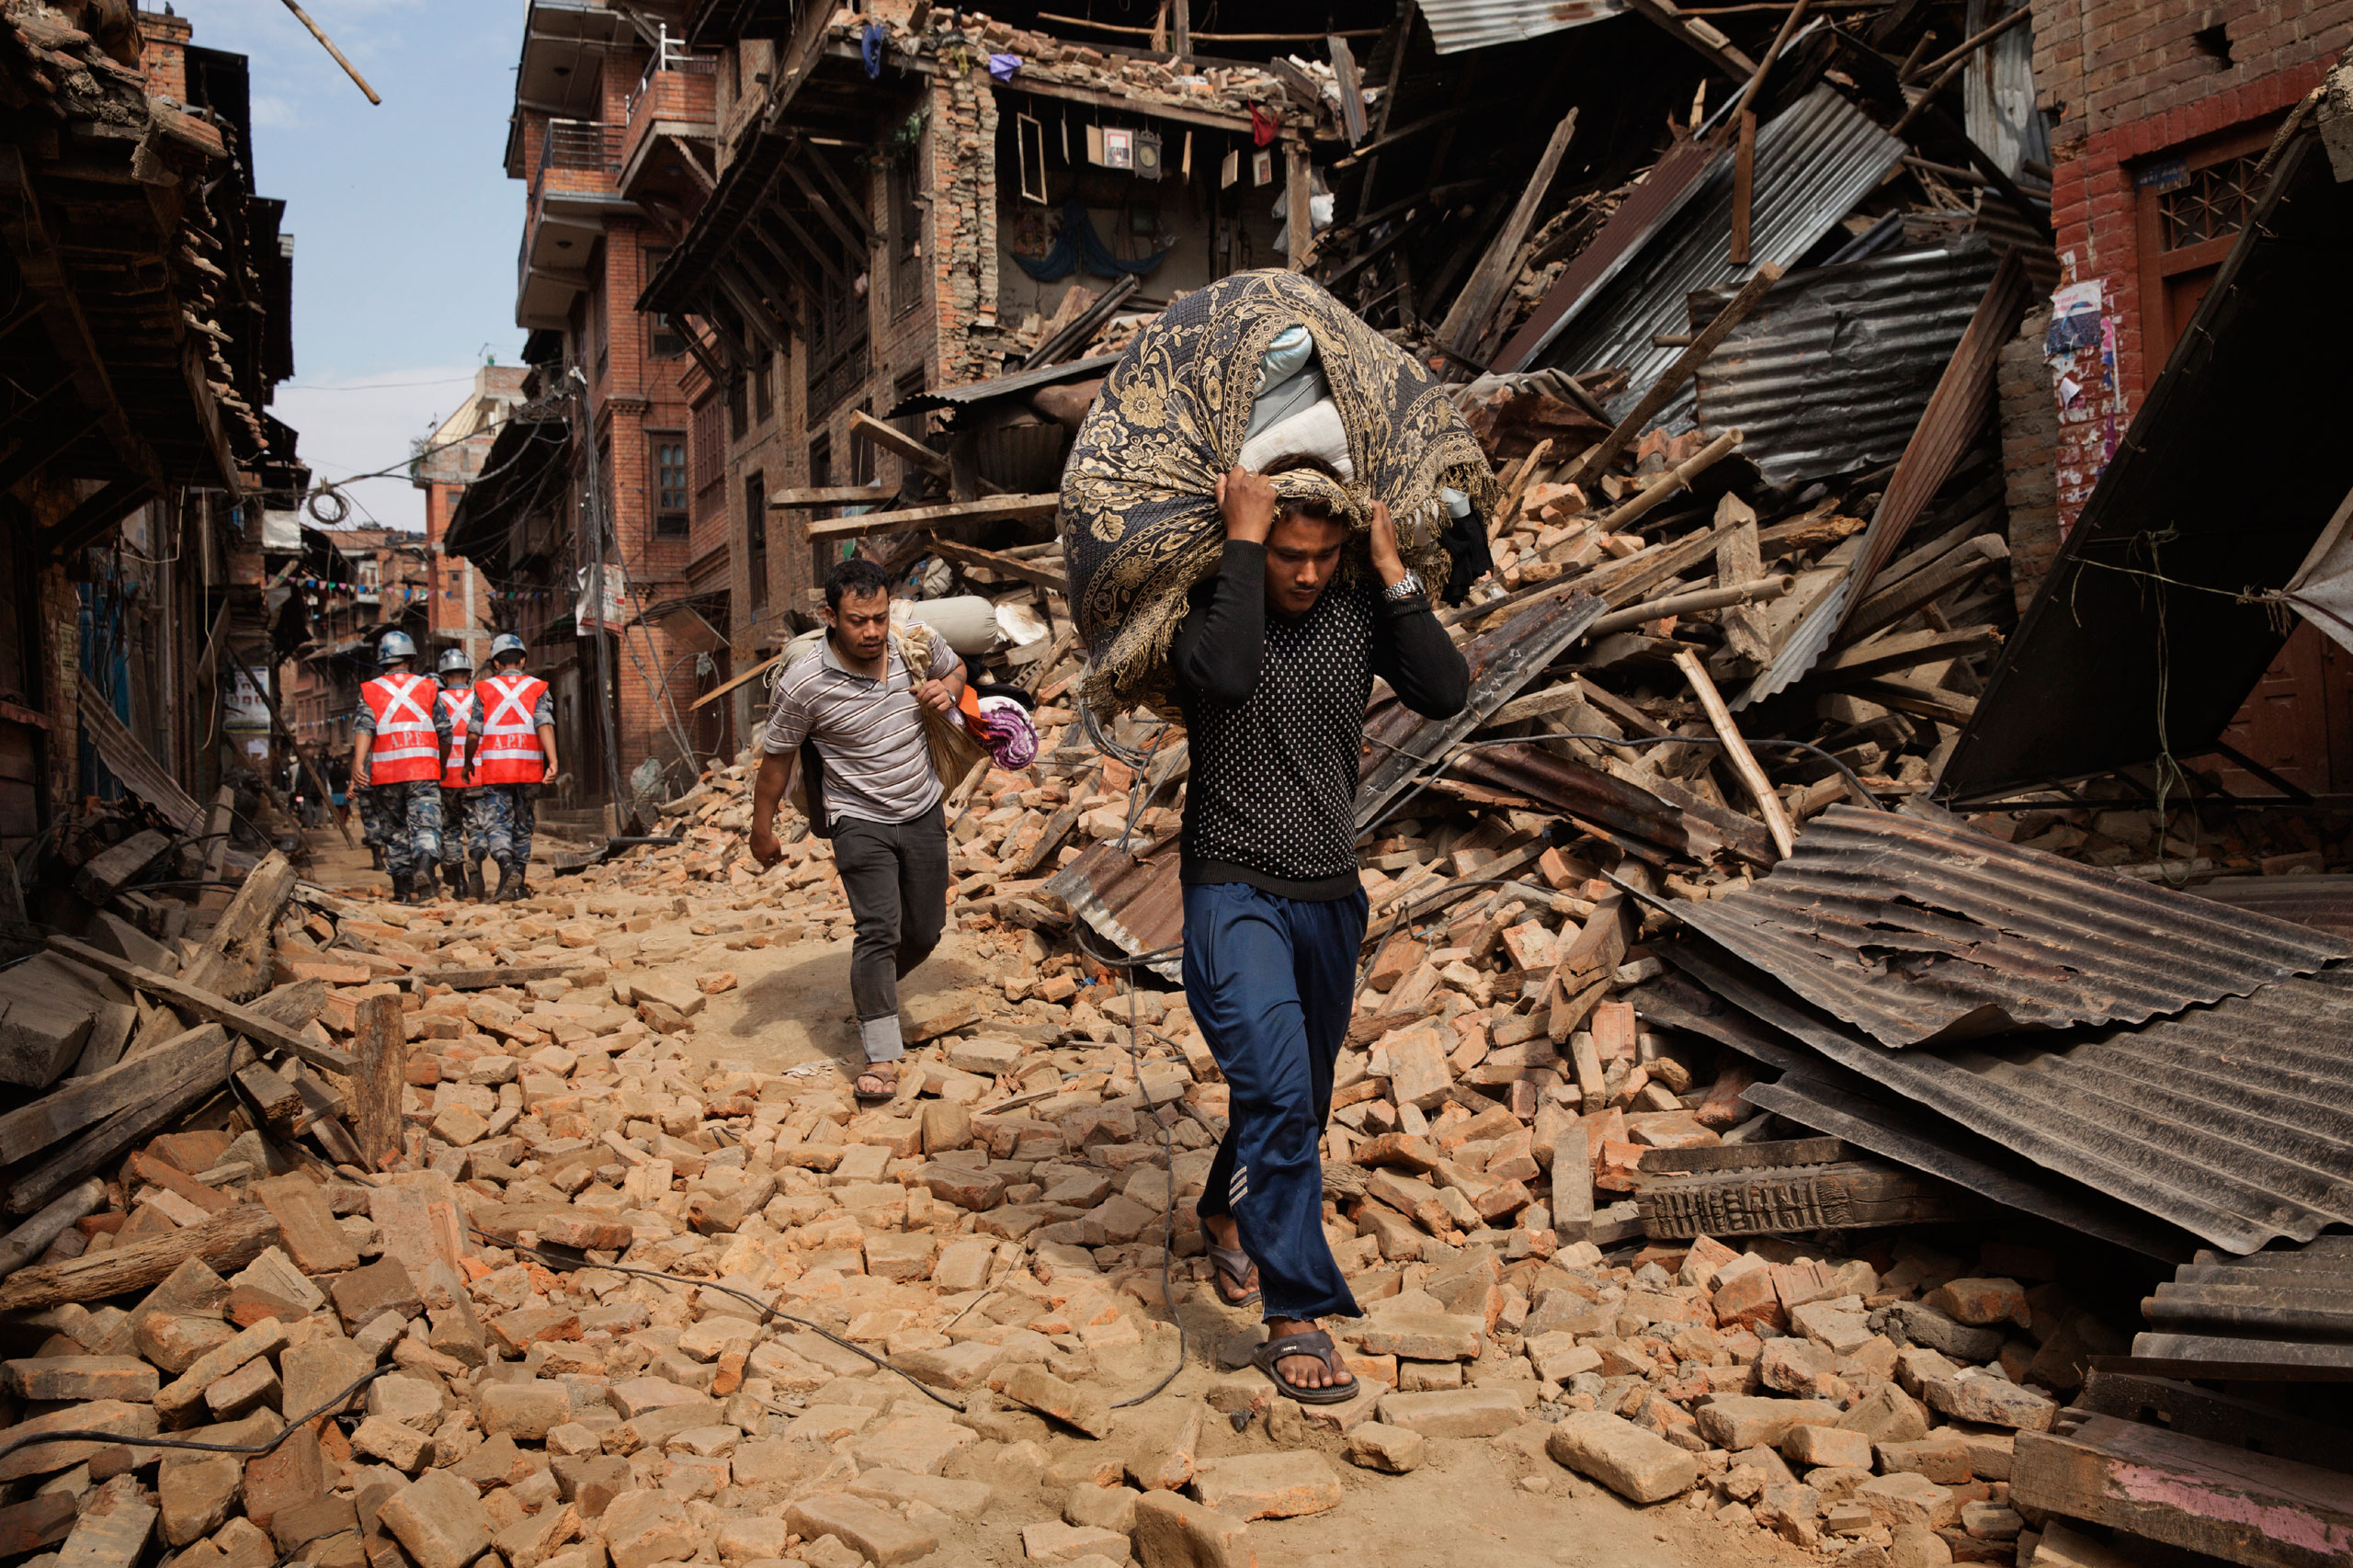 A Nepalese man carries recovered belongings through the streets of  Bhaktapur in the Kathmandu Valley, April. 28, 2015.